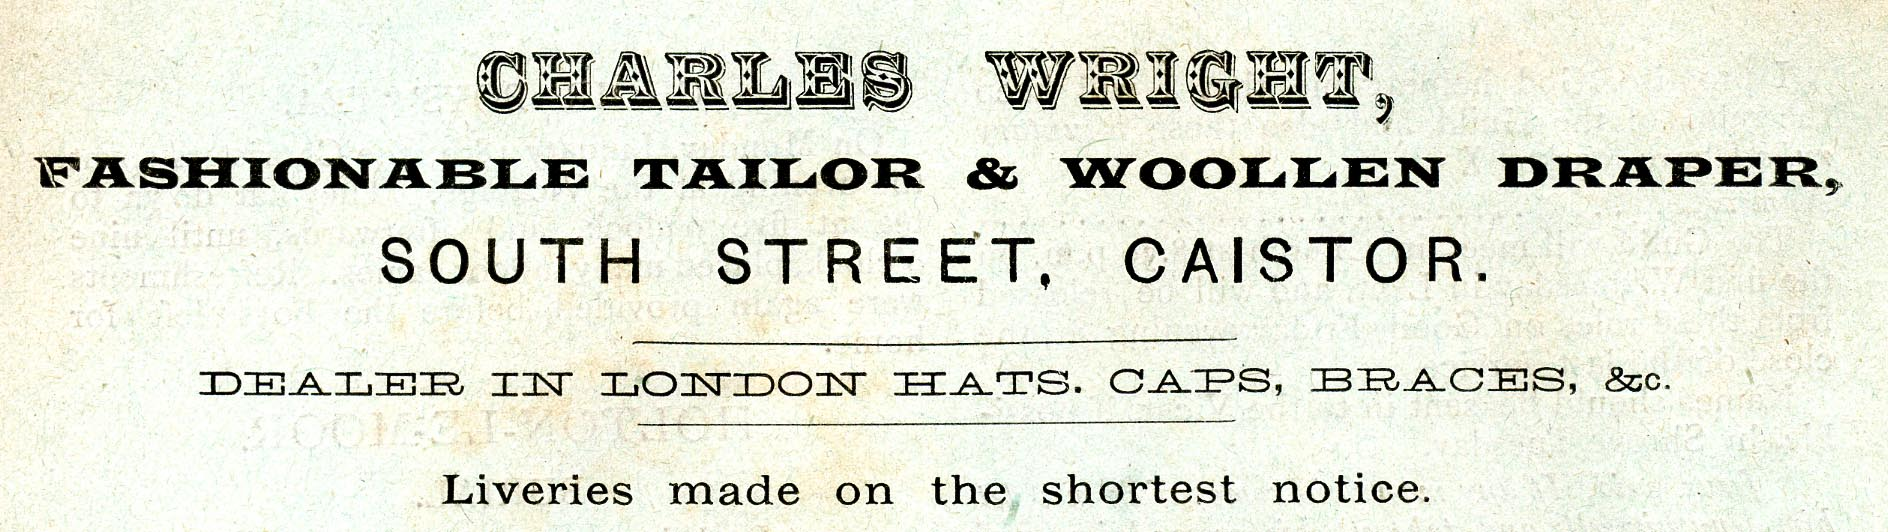 Advert 1904 Charles Wright.jpg